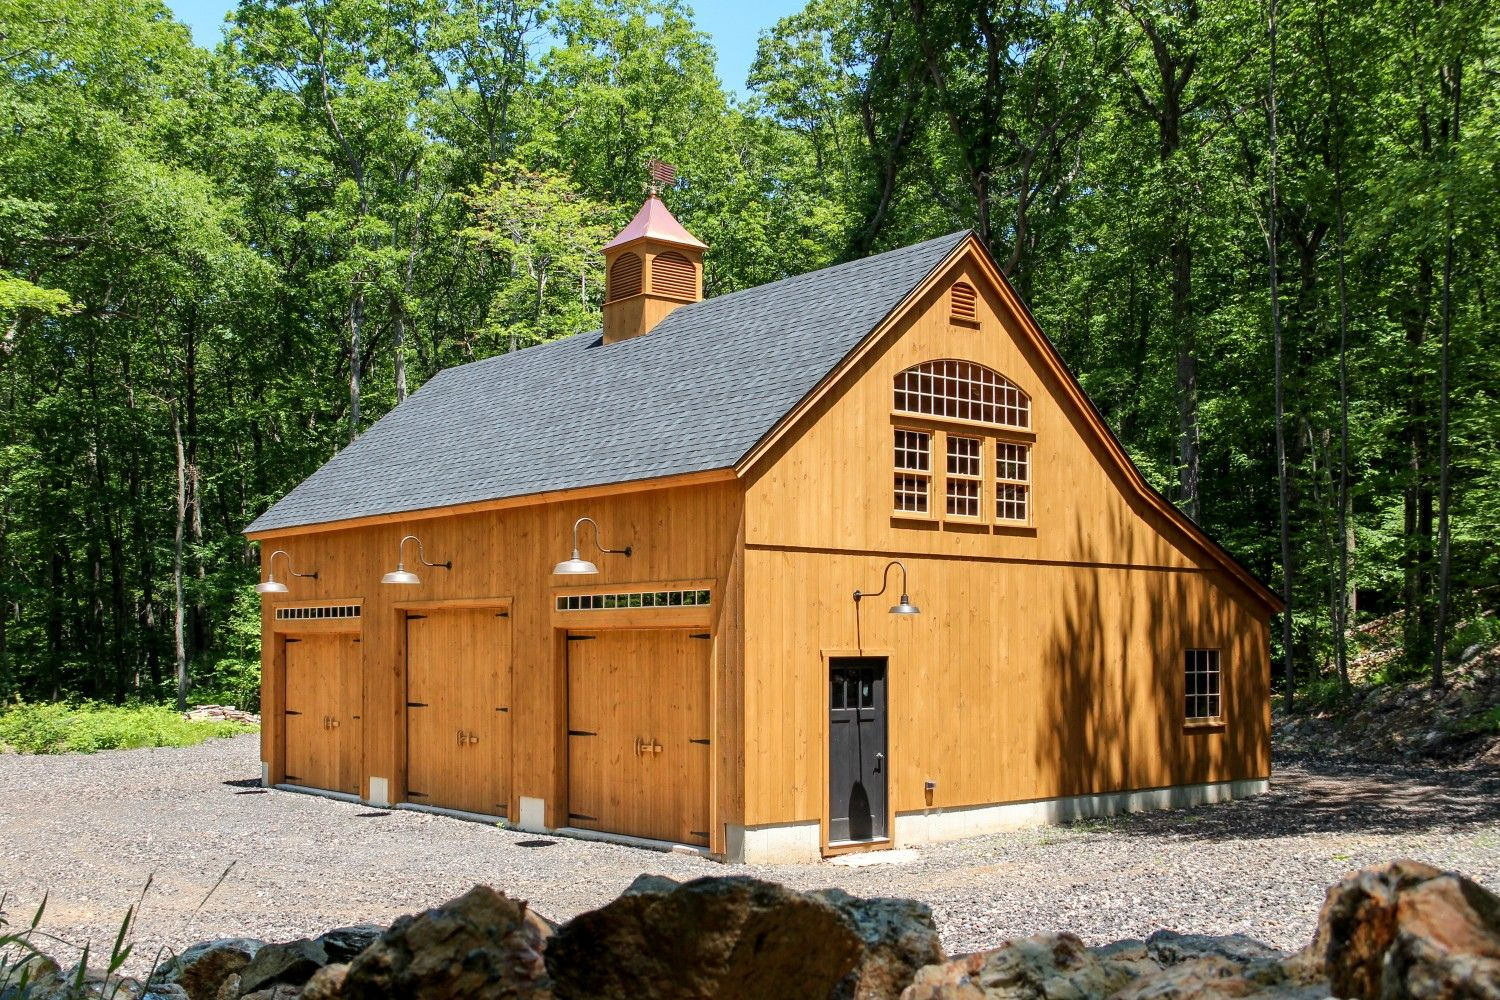 3 Overhead Doors on this 32x40 Carriage Barn Garage – 32X40 Garage Plans